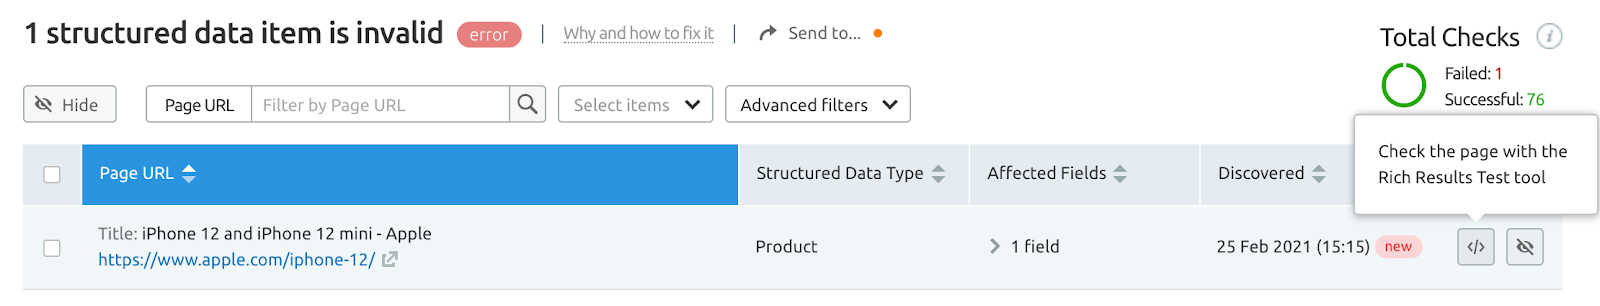 structured data site audit tool